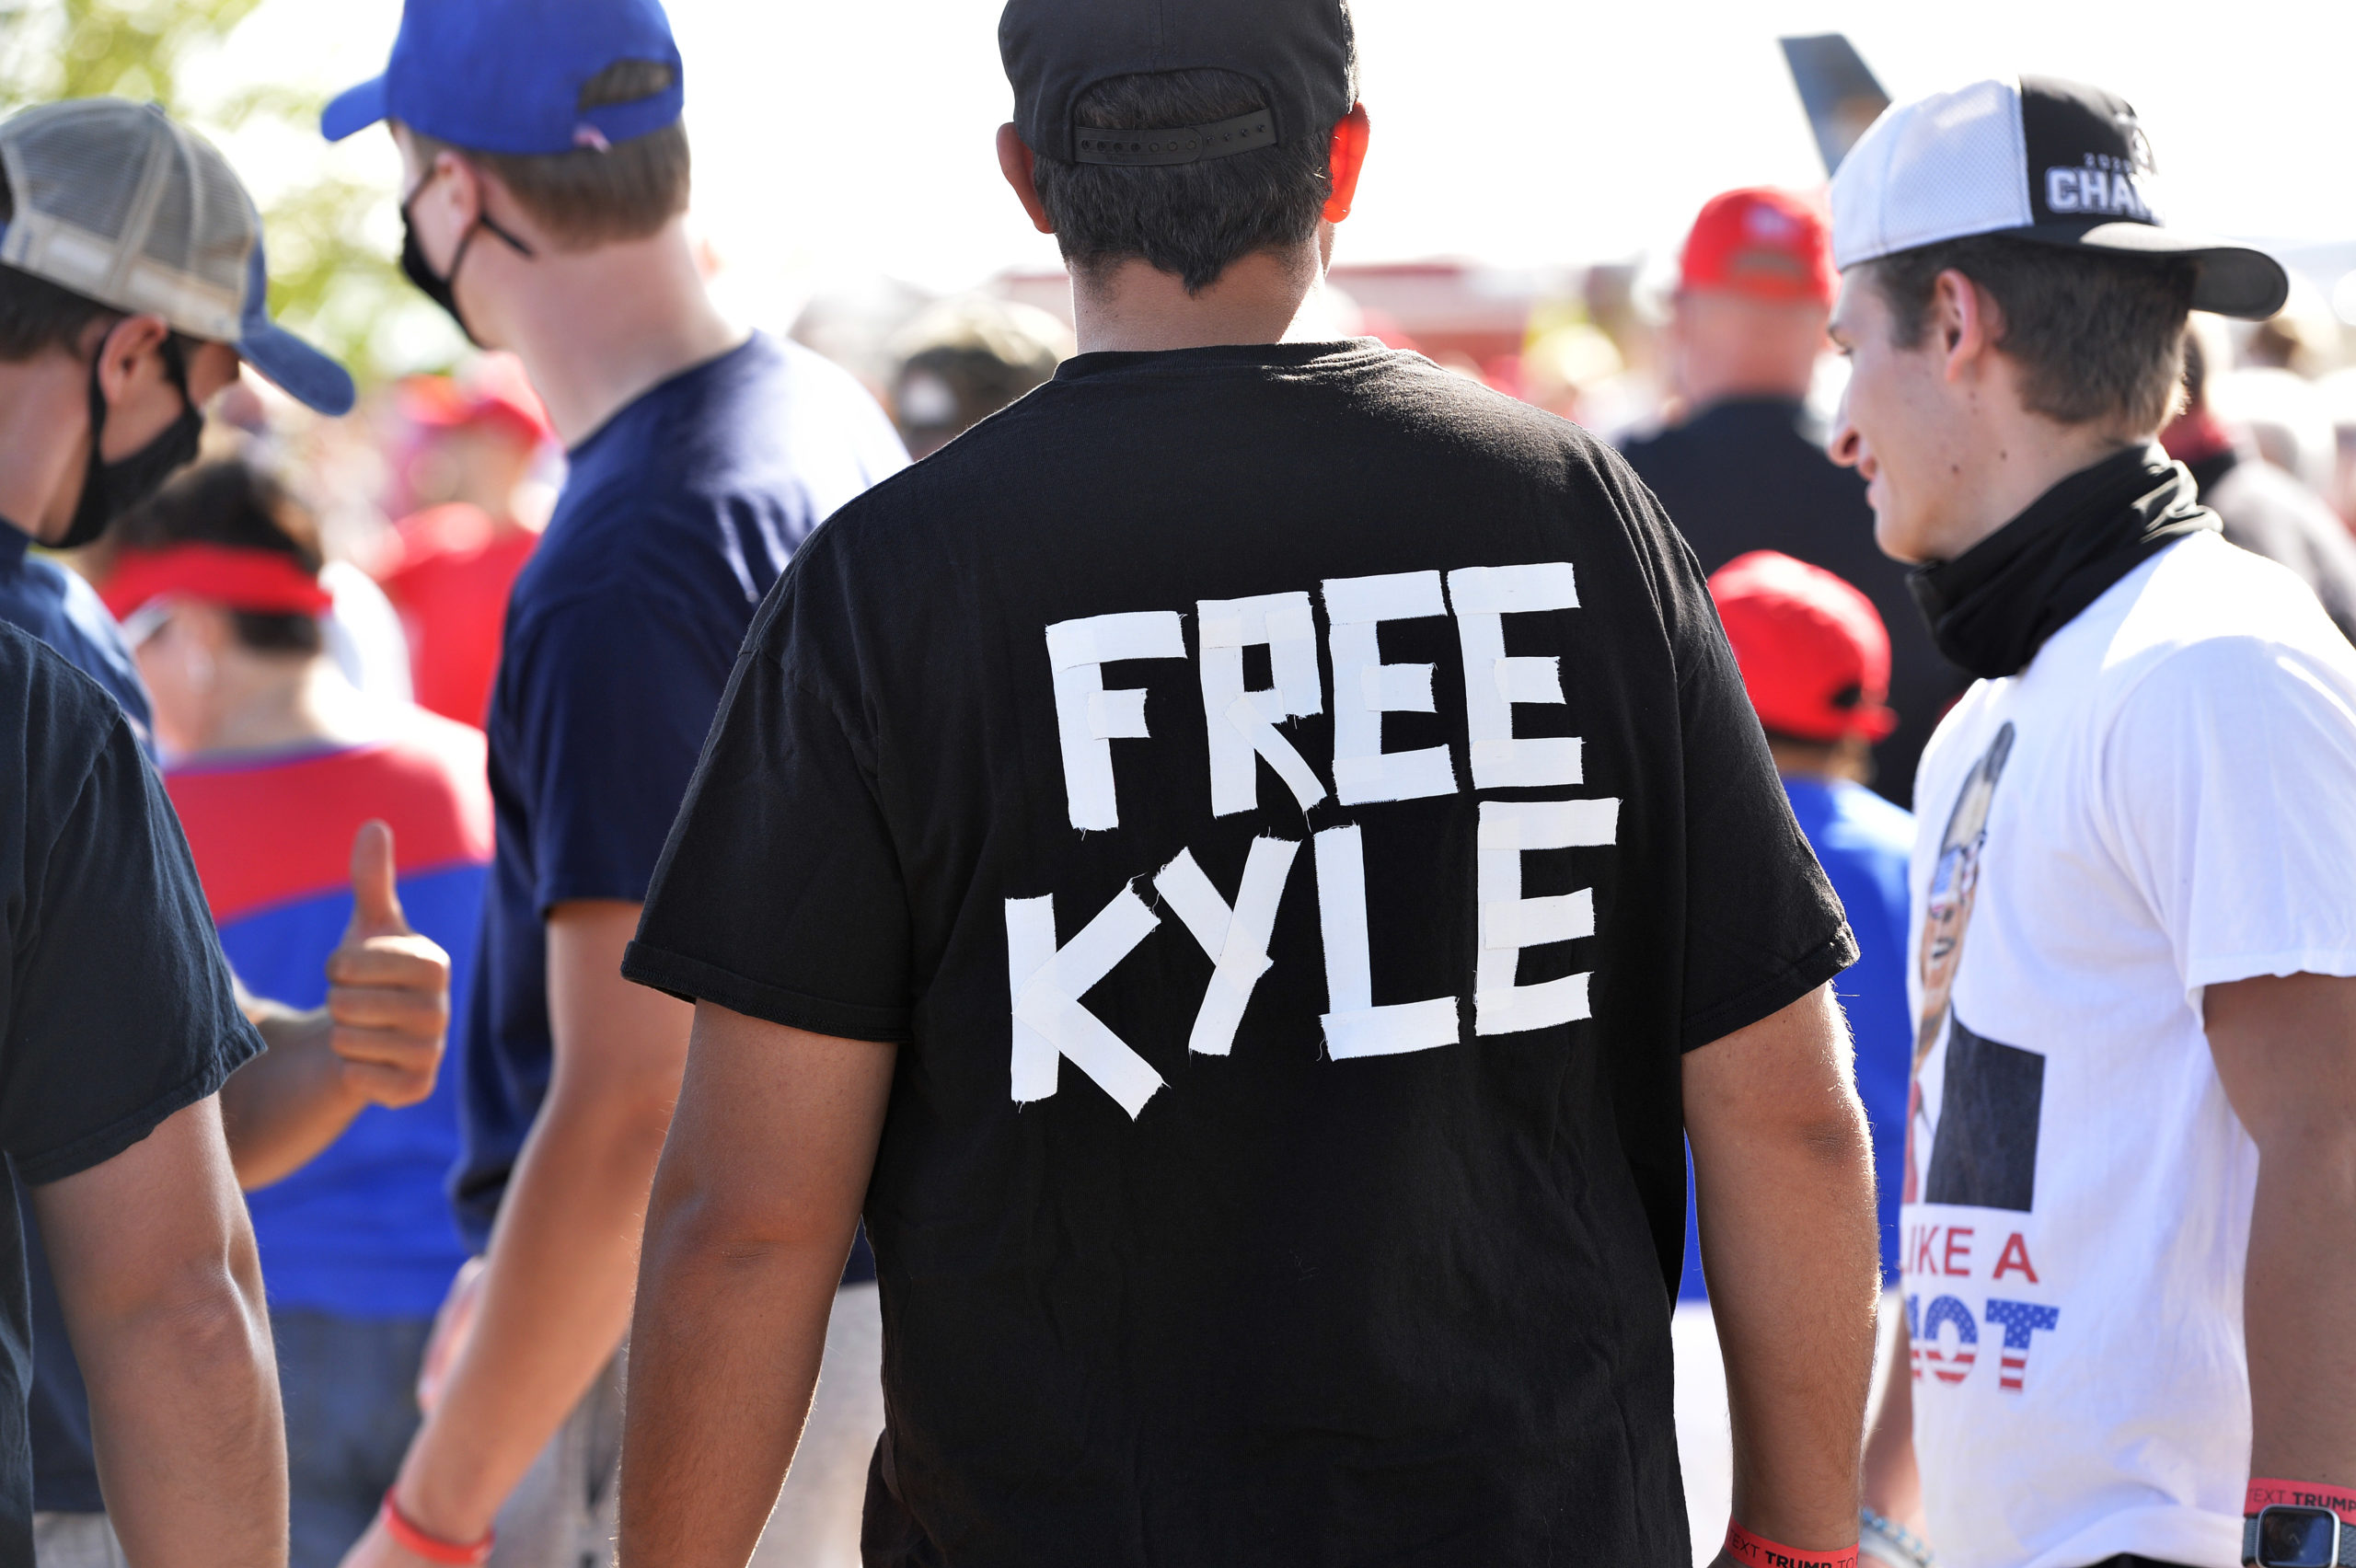 A man wears a shirt calling for freedom for Kyle Rittenhouse, 17, the man who allegedly shot protesters in Wisconsin, during a US President Donald Trump Campaign Rally, the day after the end of the Republican National Convention, at Manchester airport in Londonderry, New Hampshire on August 28, 2020. (JOSEPH PREZIOSO/AFP via Getty Images)